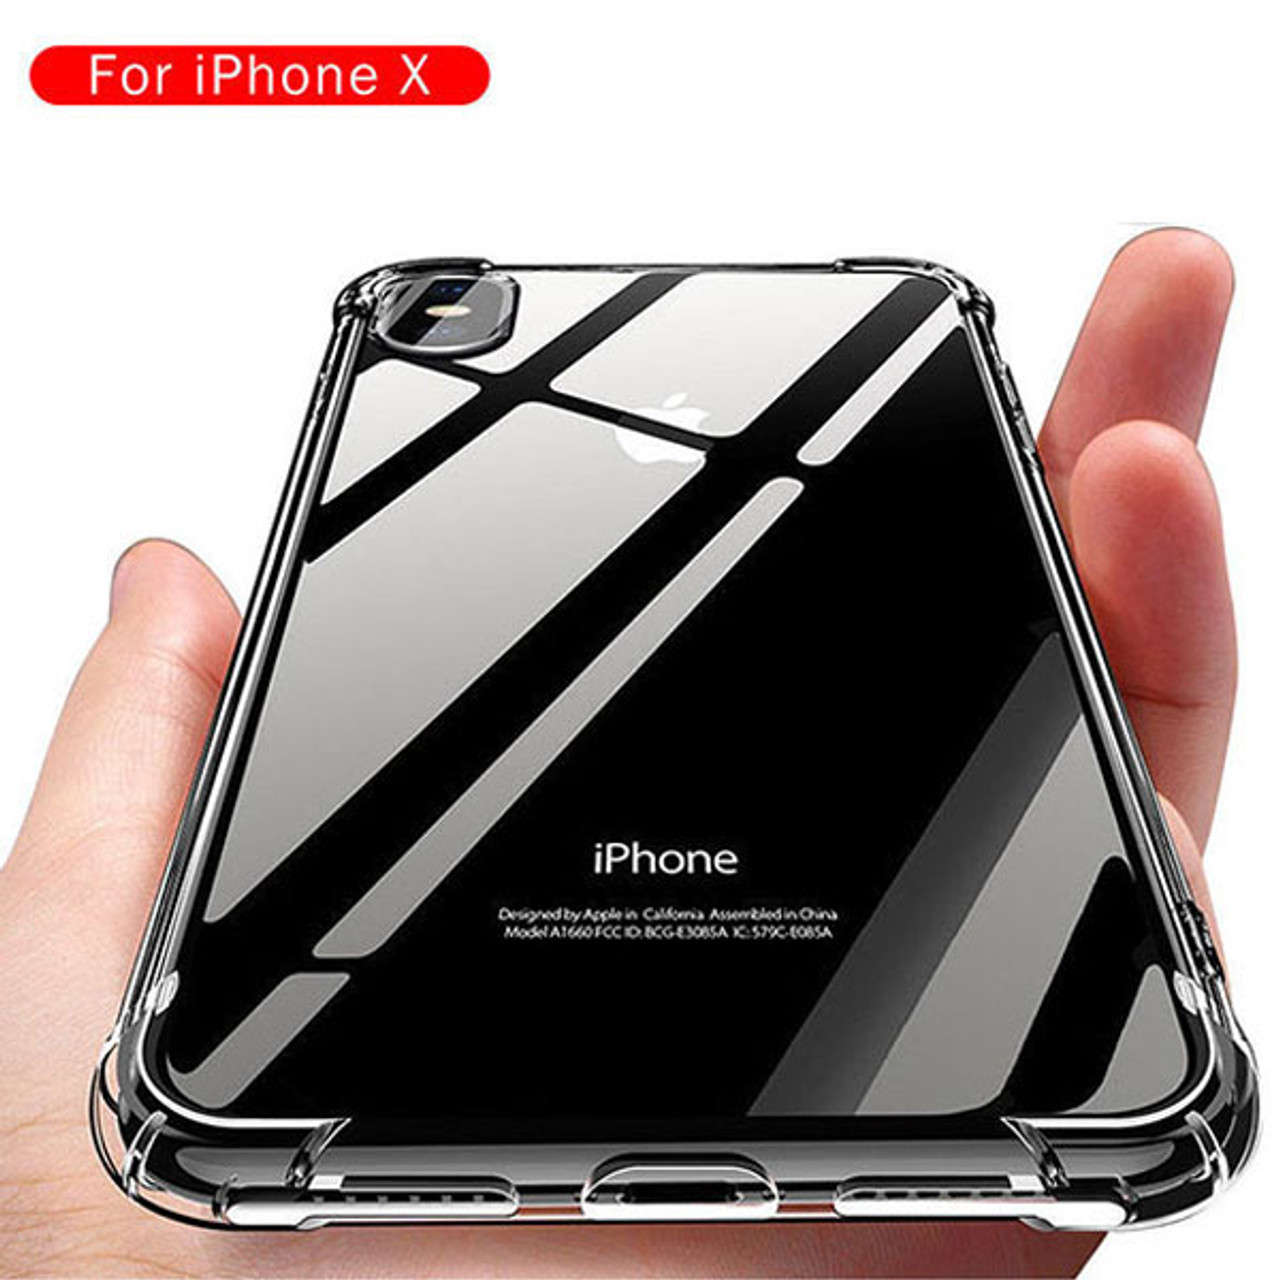 Product image for iPhone X Shockproof Slim Soft Bumper Hard Back Case Cover Clear | CX Computer Superstore